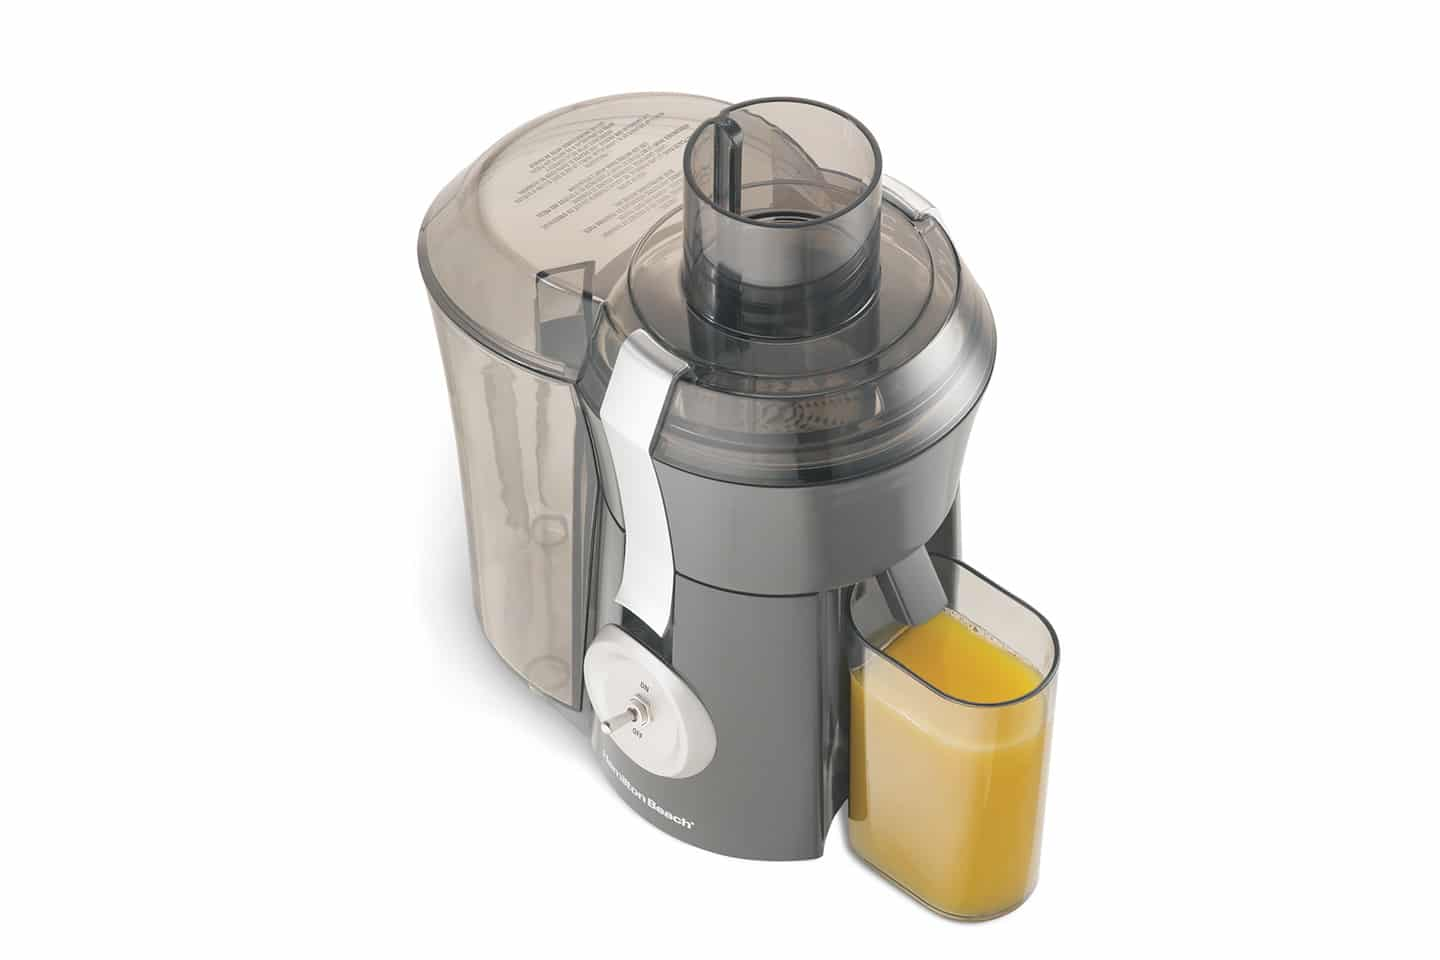 Hamilton Beach Big Mouth Pro Juice Extractor Review | Juicing Journal